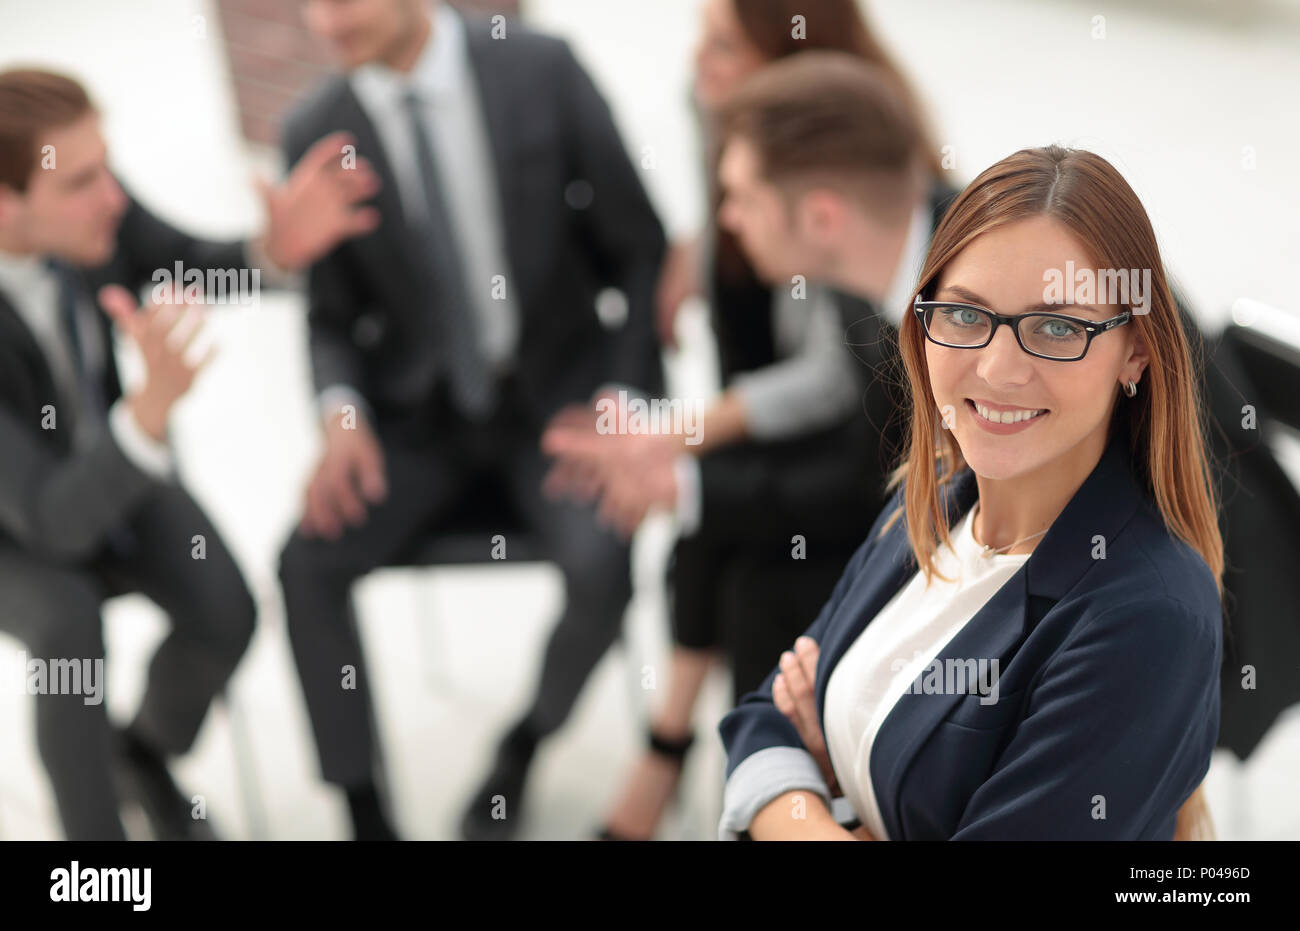 Business people conference and meeting in modern office - Stock Image